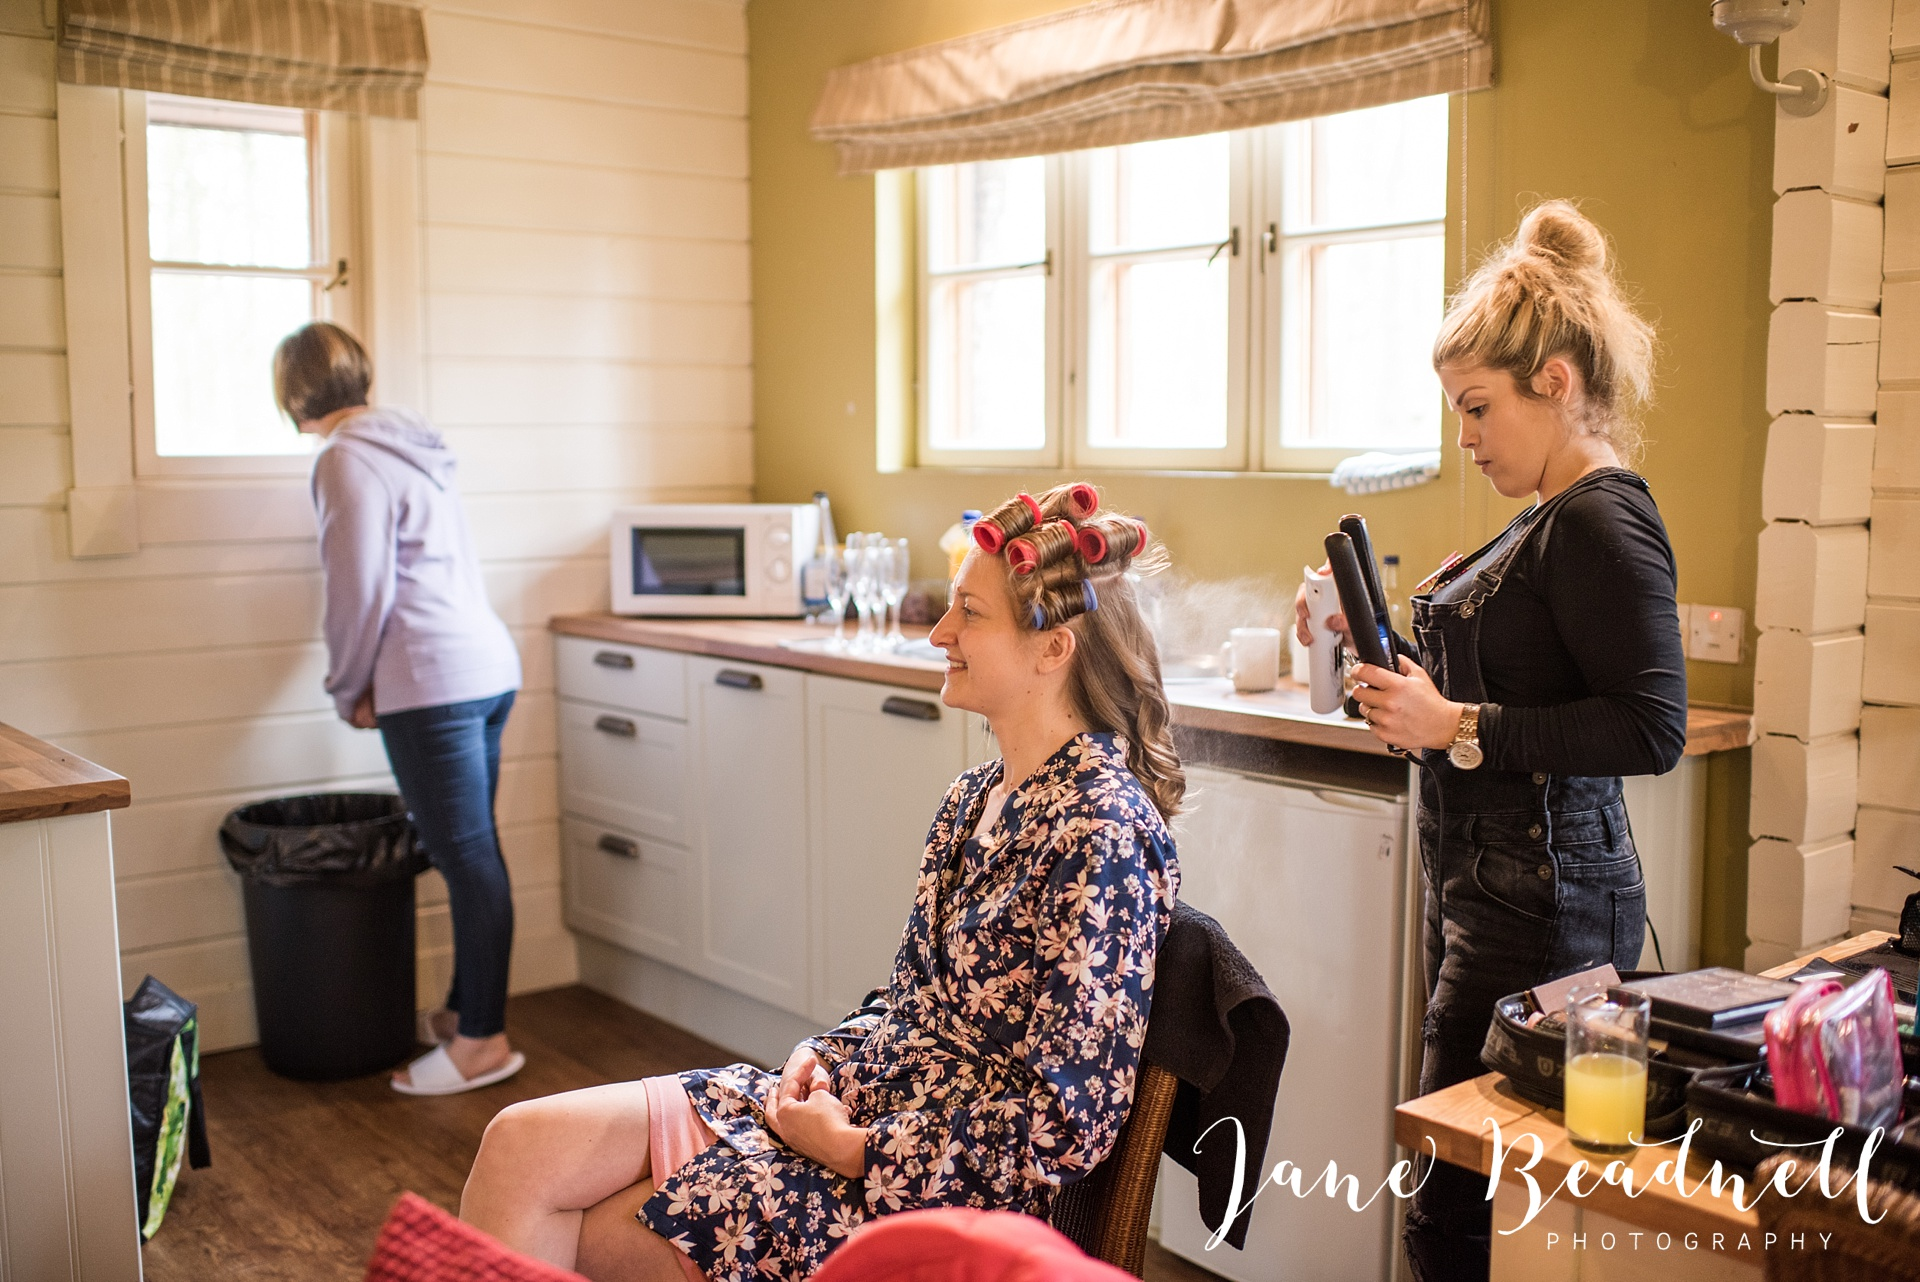 Otley Chevin Lodge wedding photography by Jane Beadnell Photography Leeds_0007